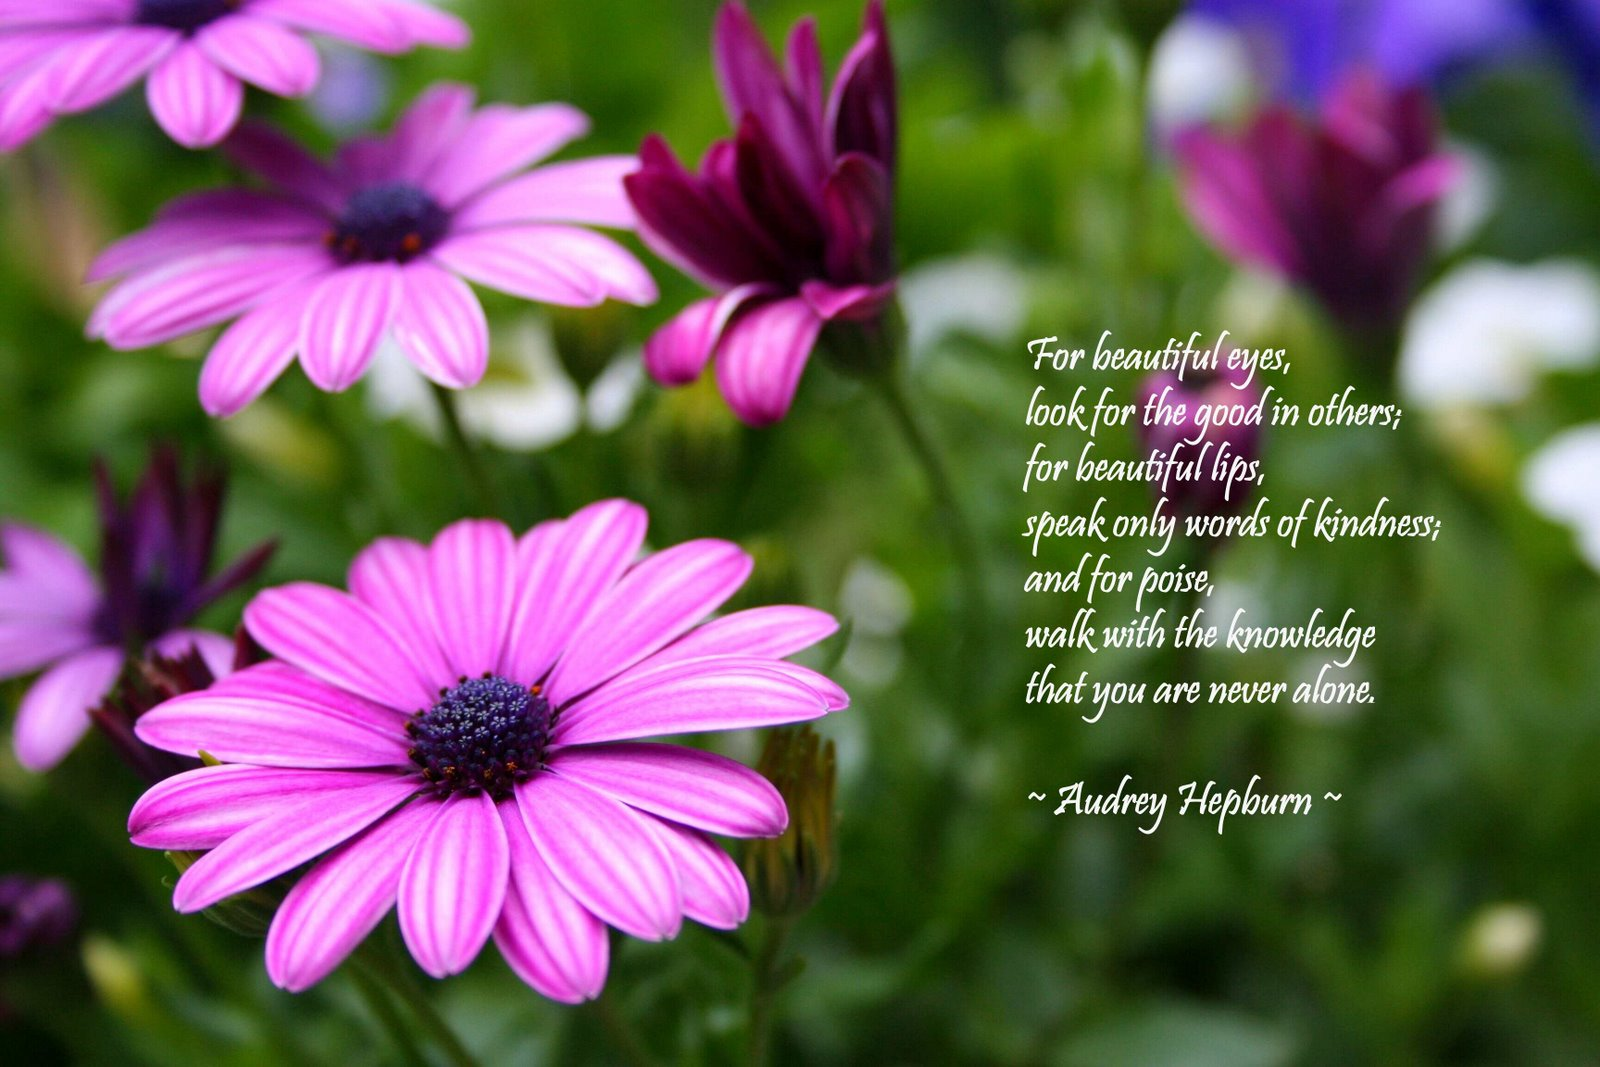 For Beautiful Eyes Audrey Hepburn Quote 5 Quotes Links